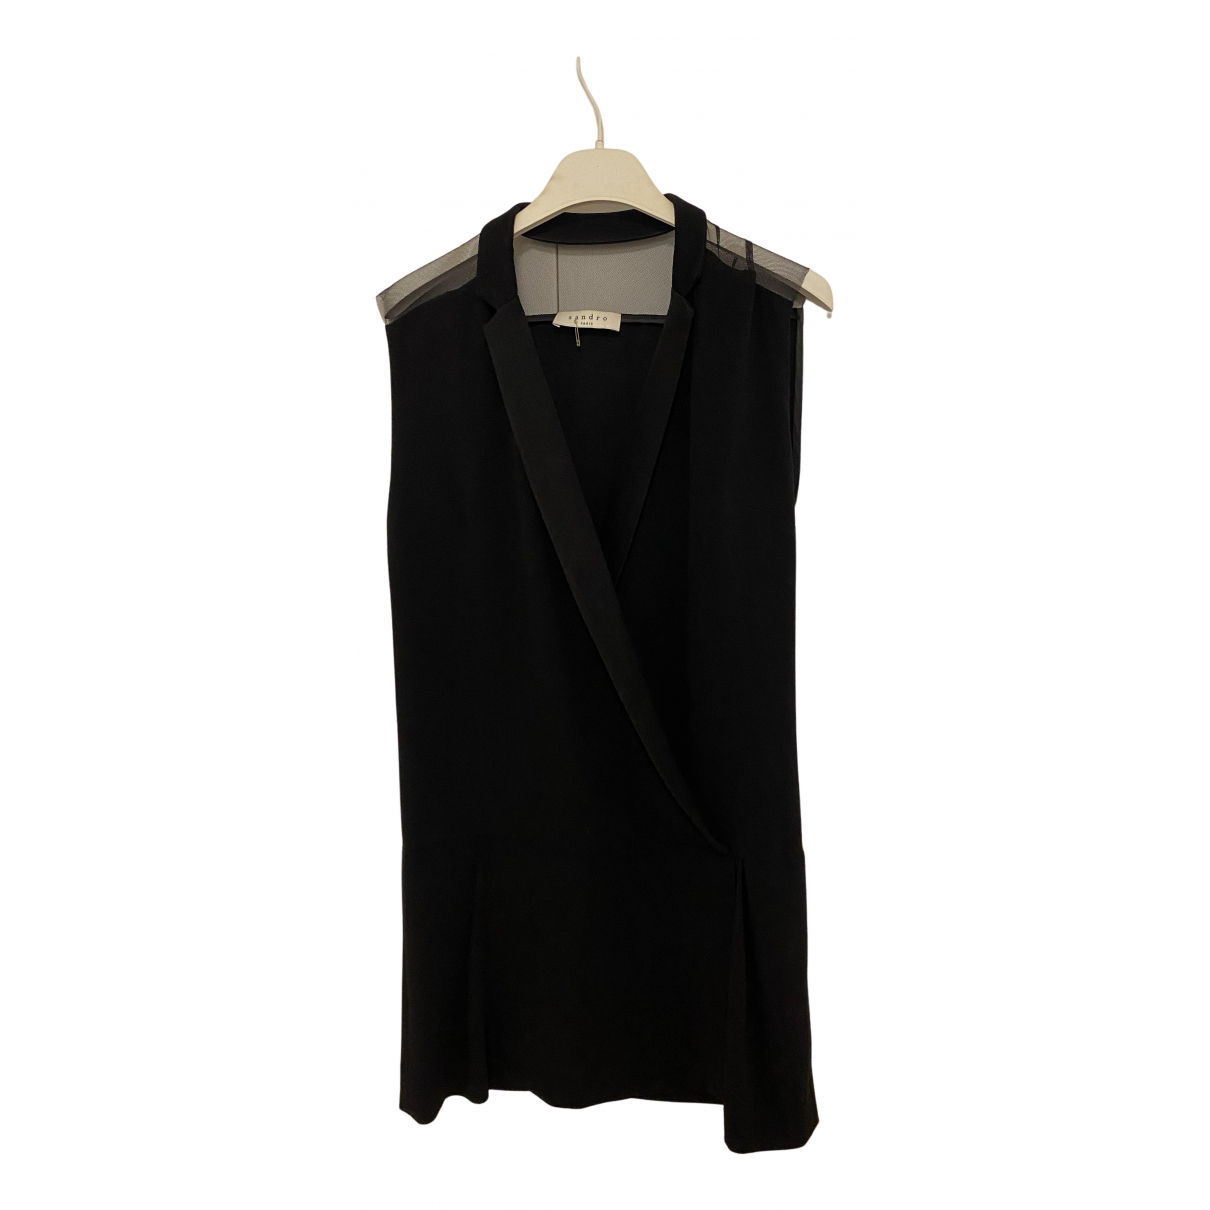 Sandro N Black dress for Women 1 US